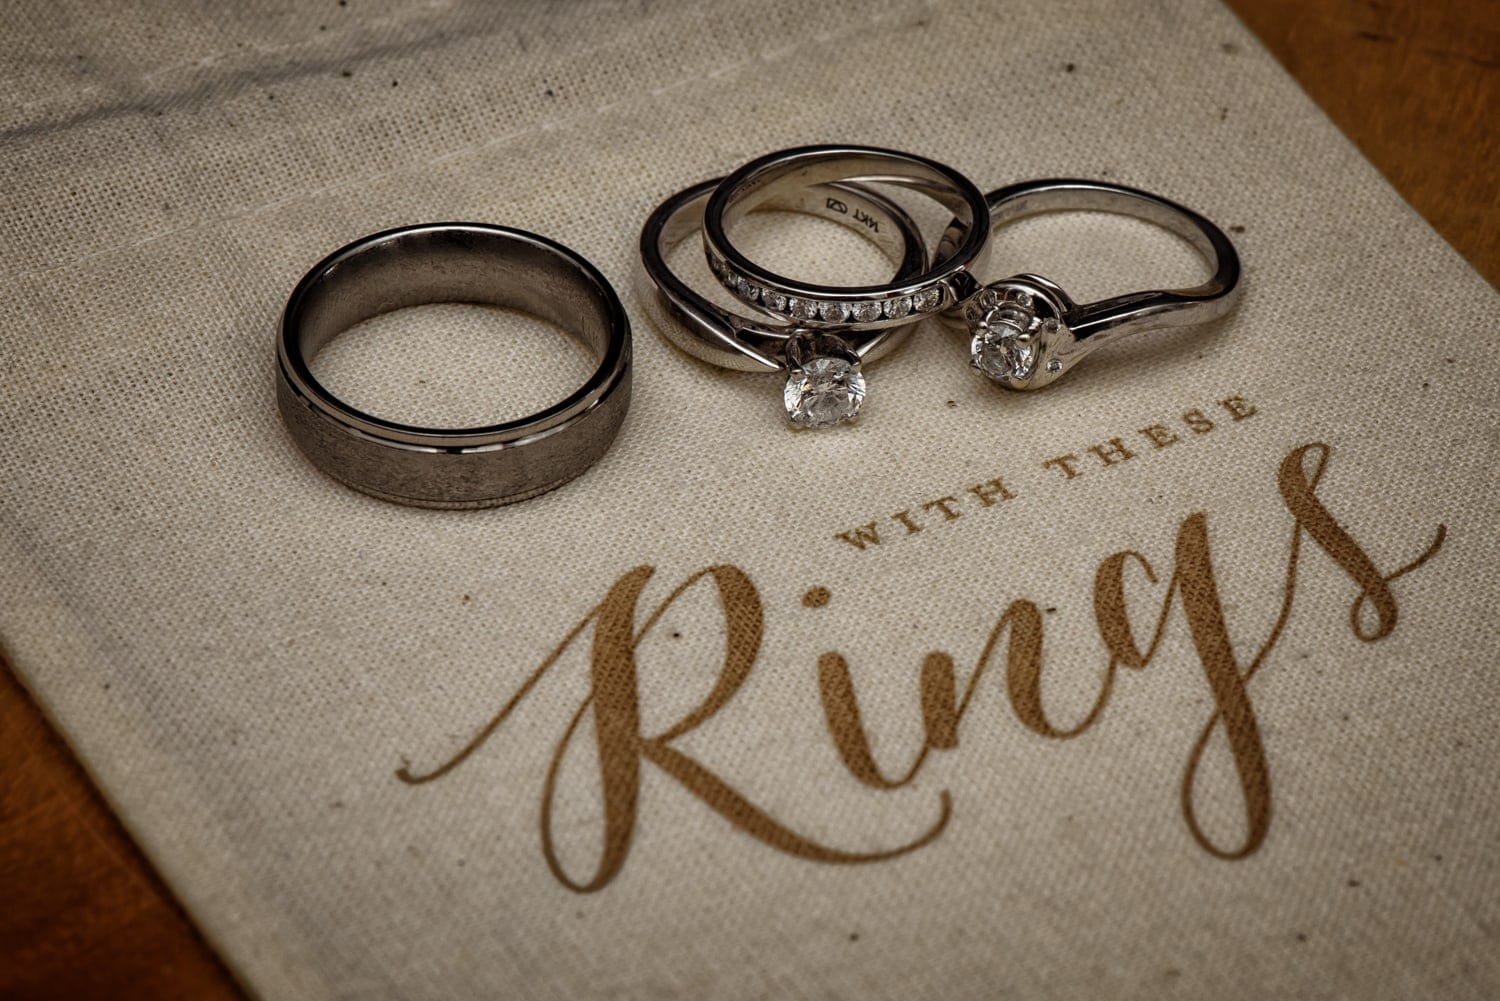 The bride and groom wedding bands on a cute with this ring we thee wed ivory burlap bag.